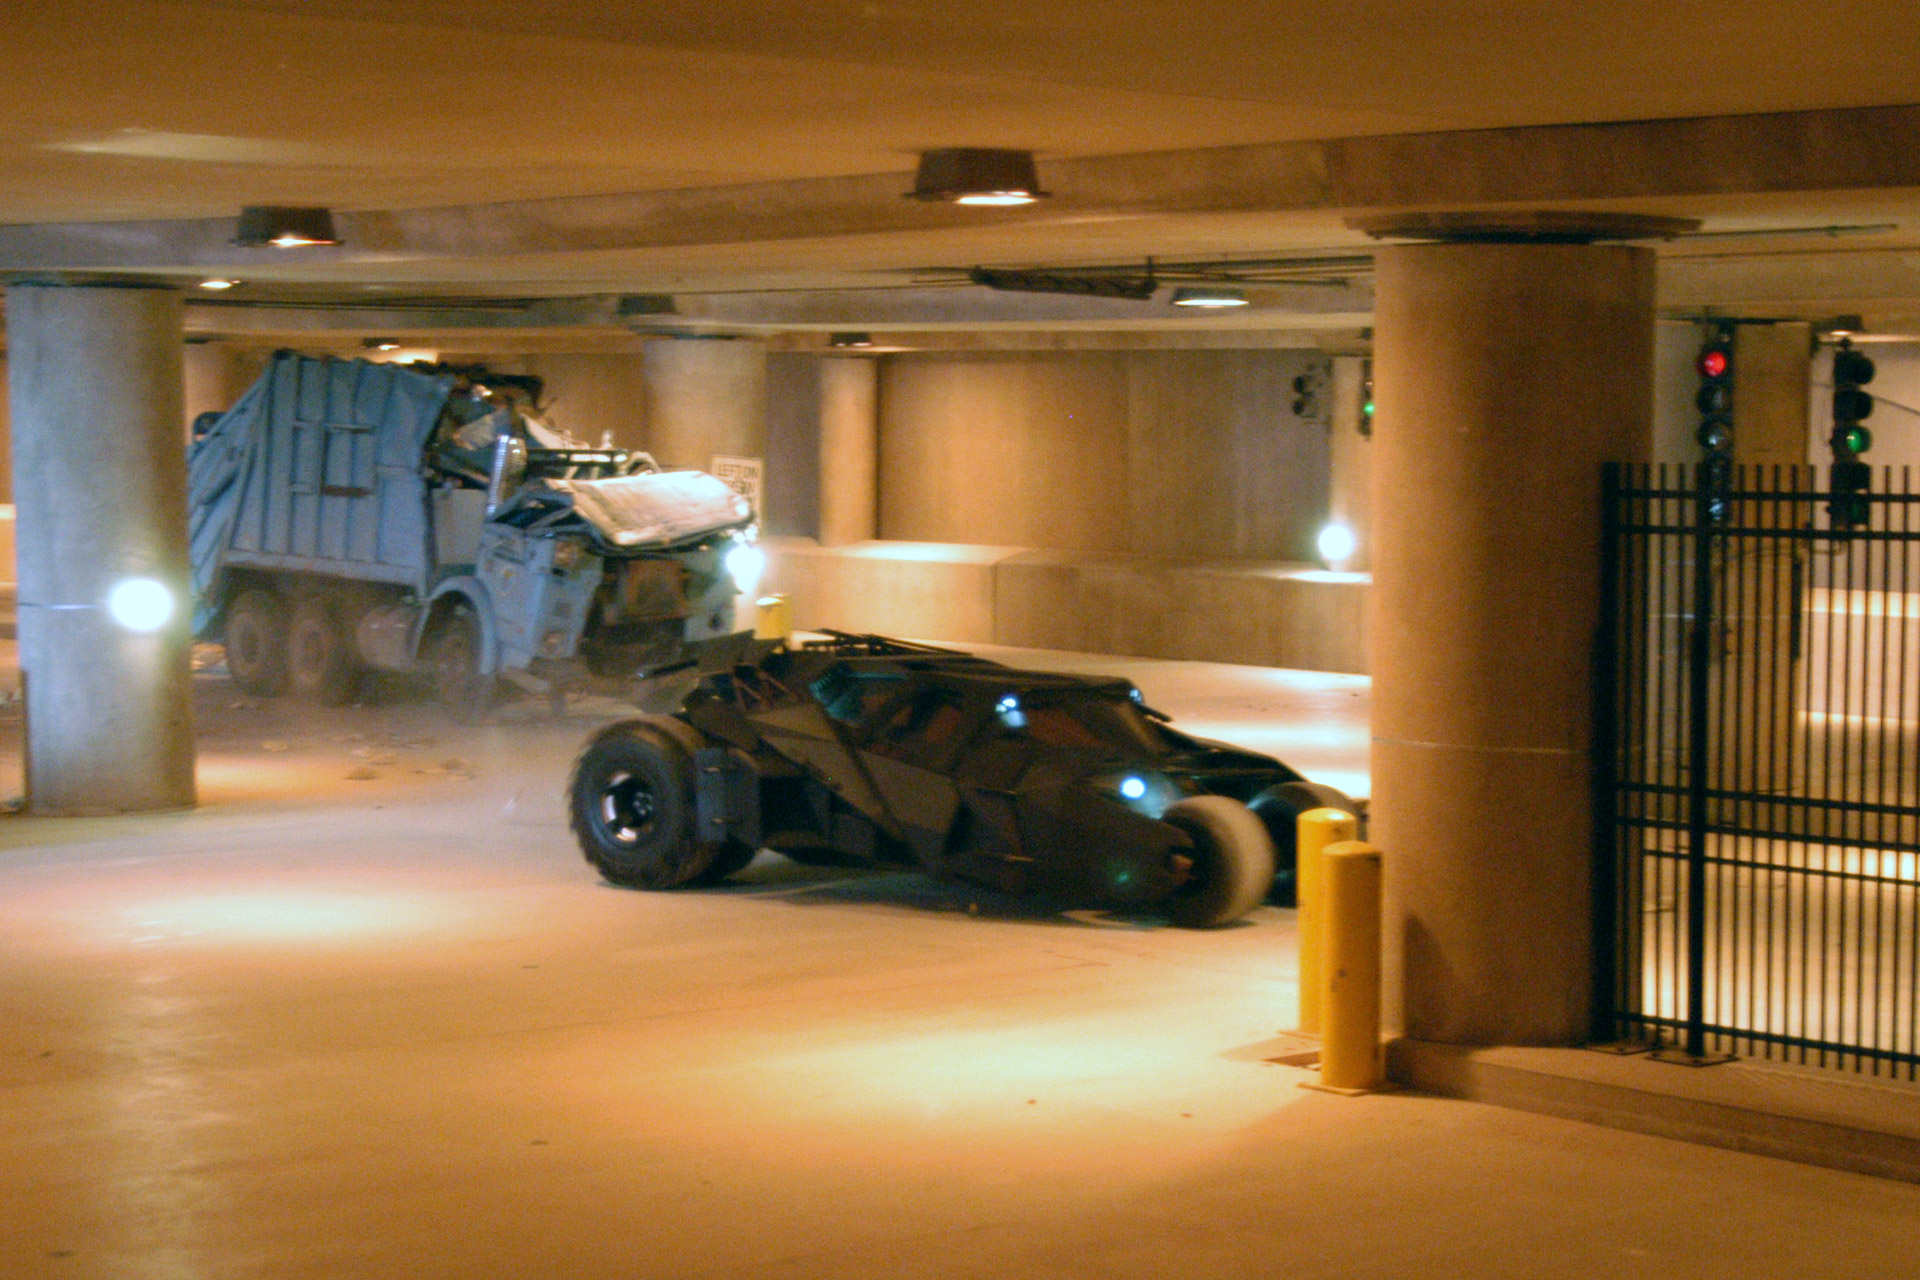 731_1929_darkknight_onset_2.jpg